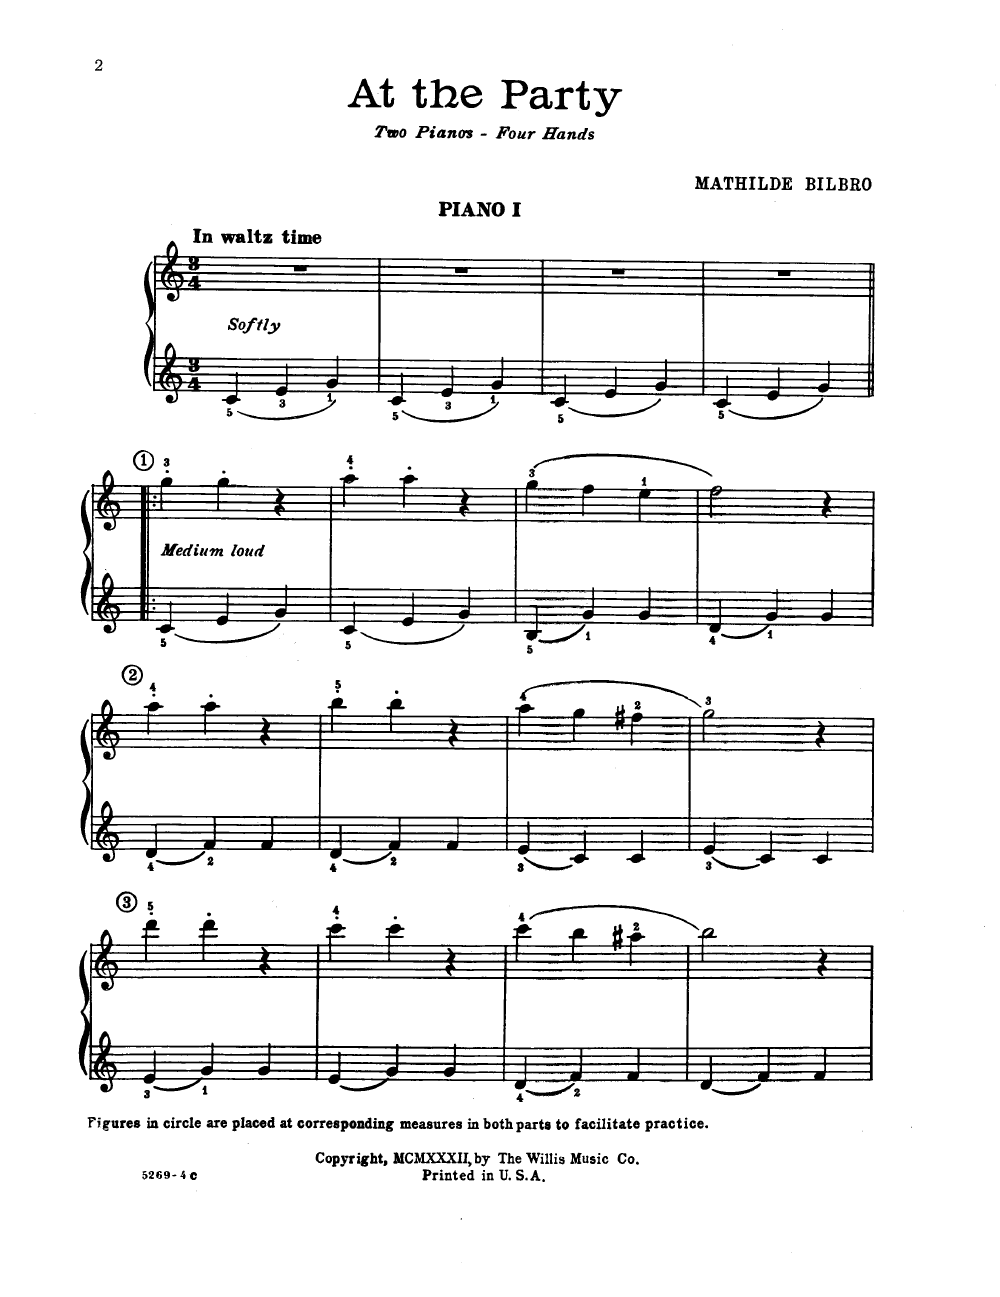 At The Party 2 Pianos 4 Hands By Bilbro Jw Pepper Sheet Music Piano Parts Diagram Willis Company